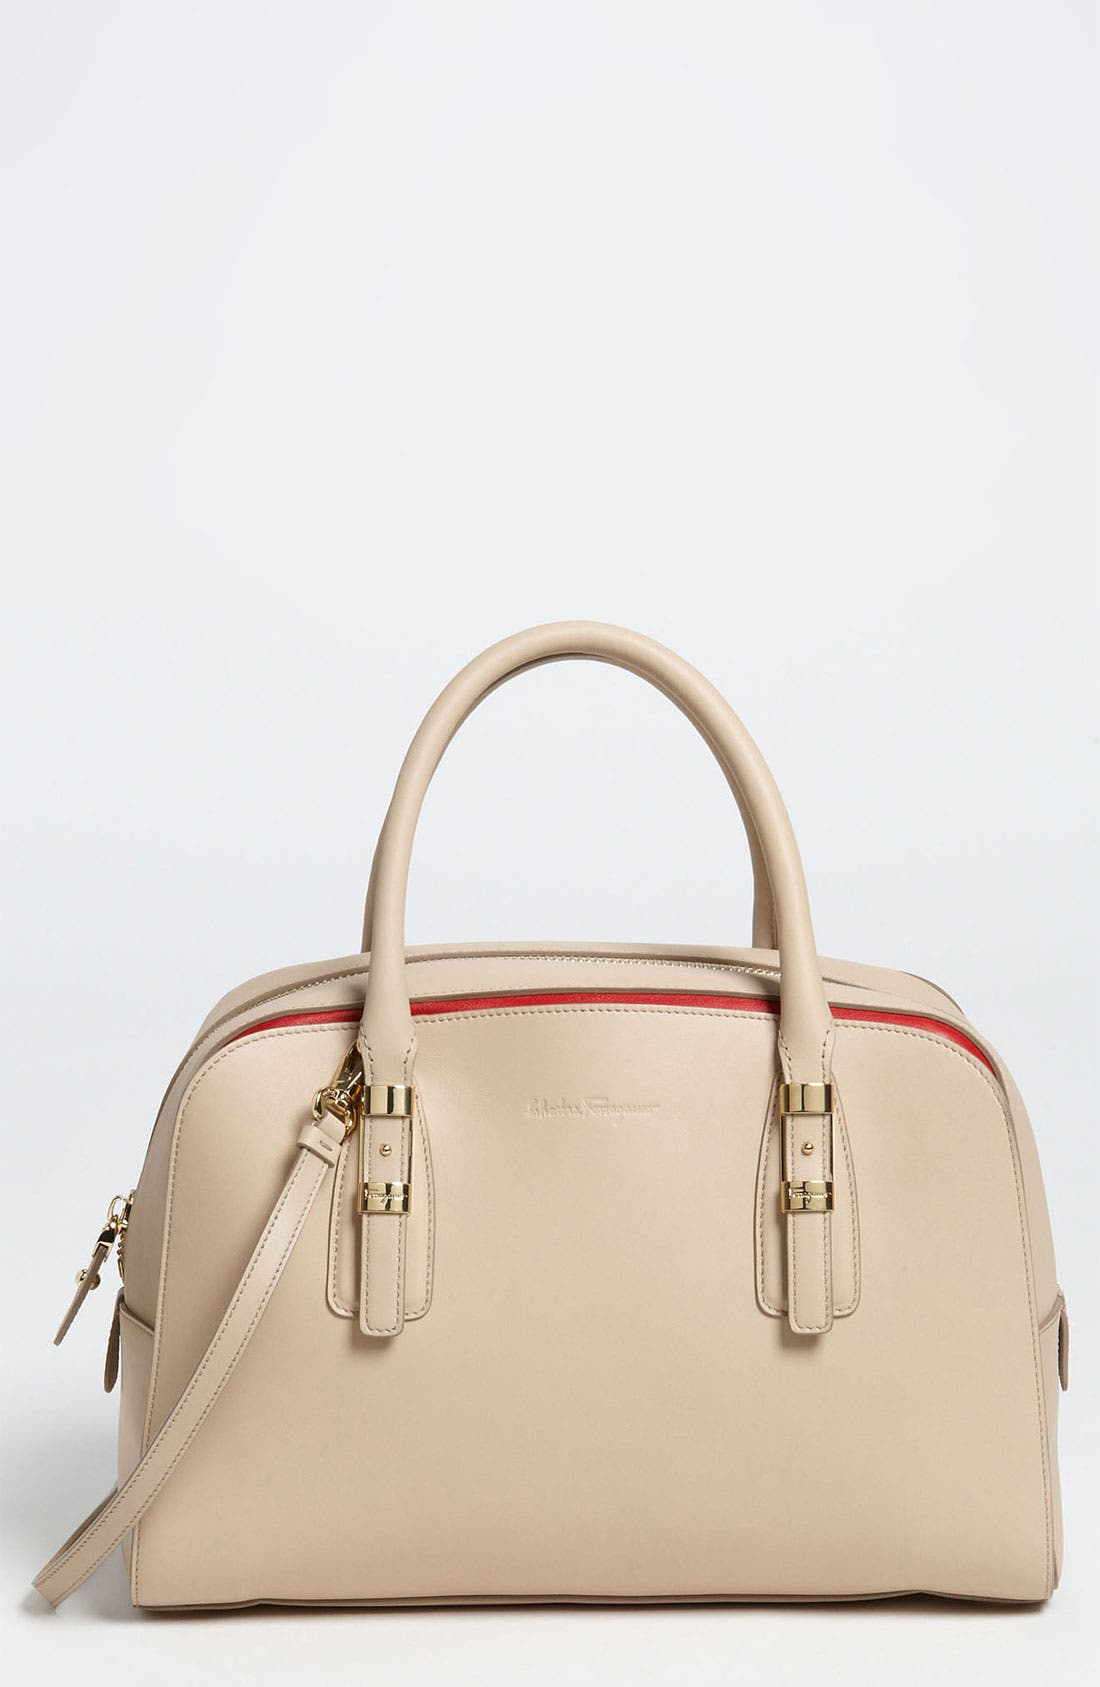 Main Image - Salvatore Ferragamo 'Emmy - Small' Leather Crossbody Bag